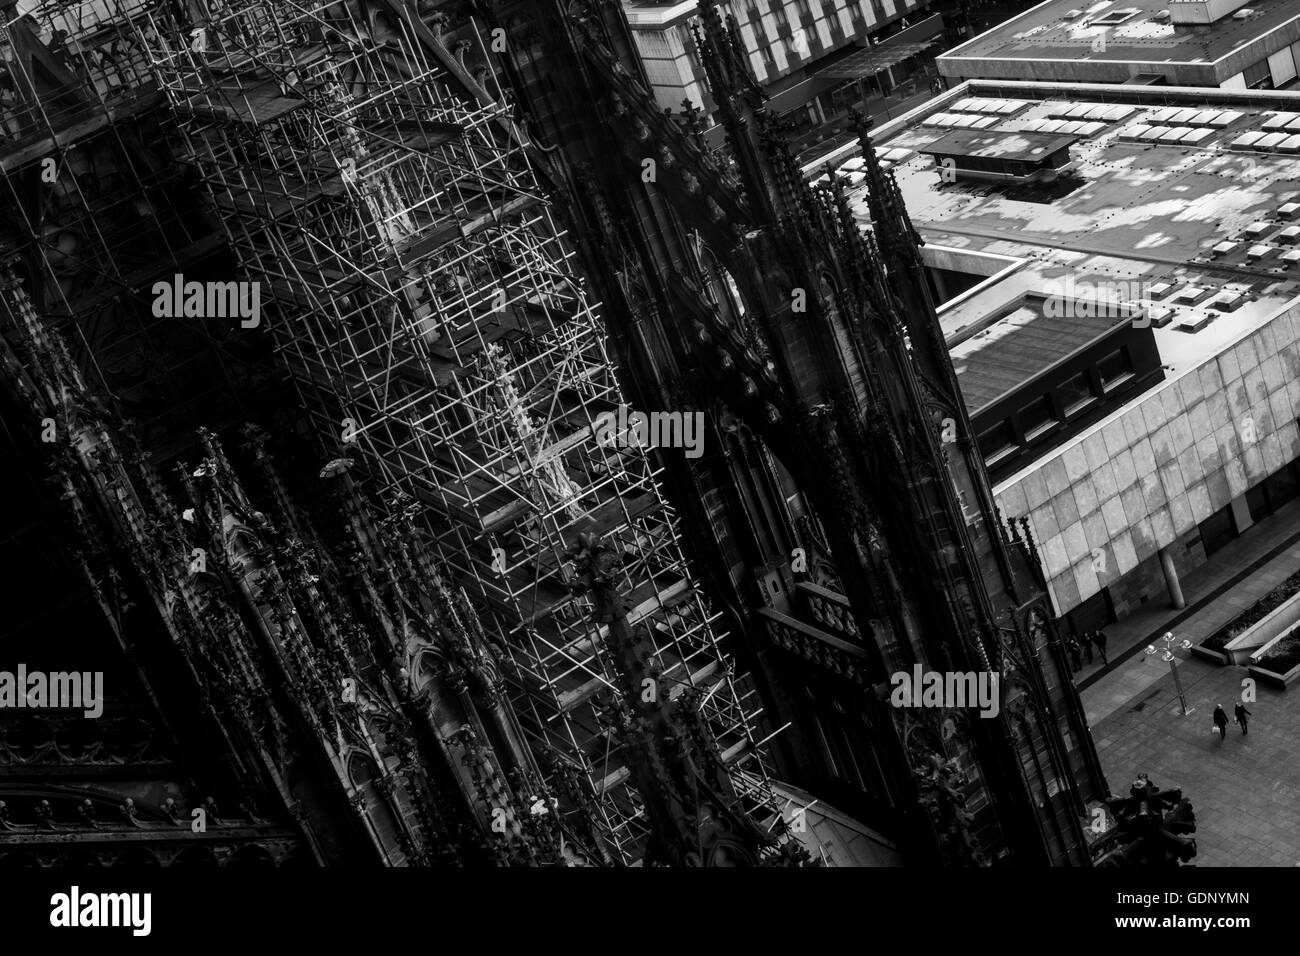 Scaffolding erected on the Cologne Cathedral for renovations to take place. Cologne, Germany. - Stock Image